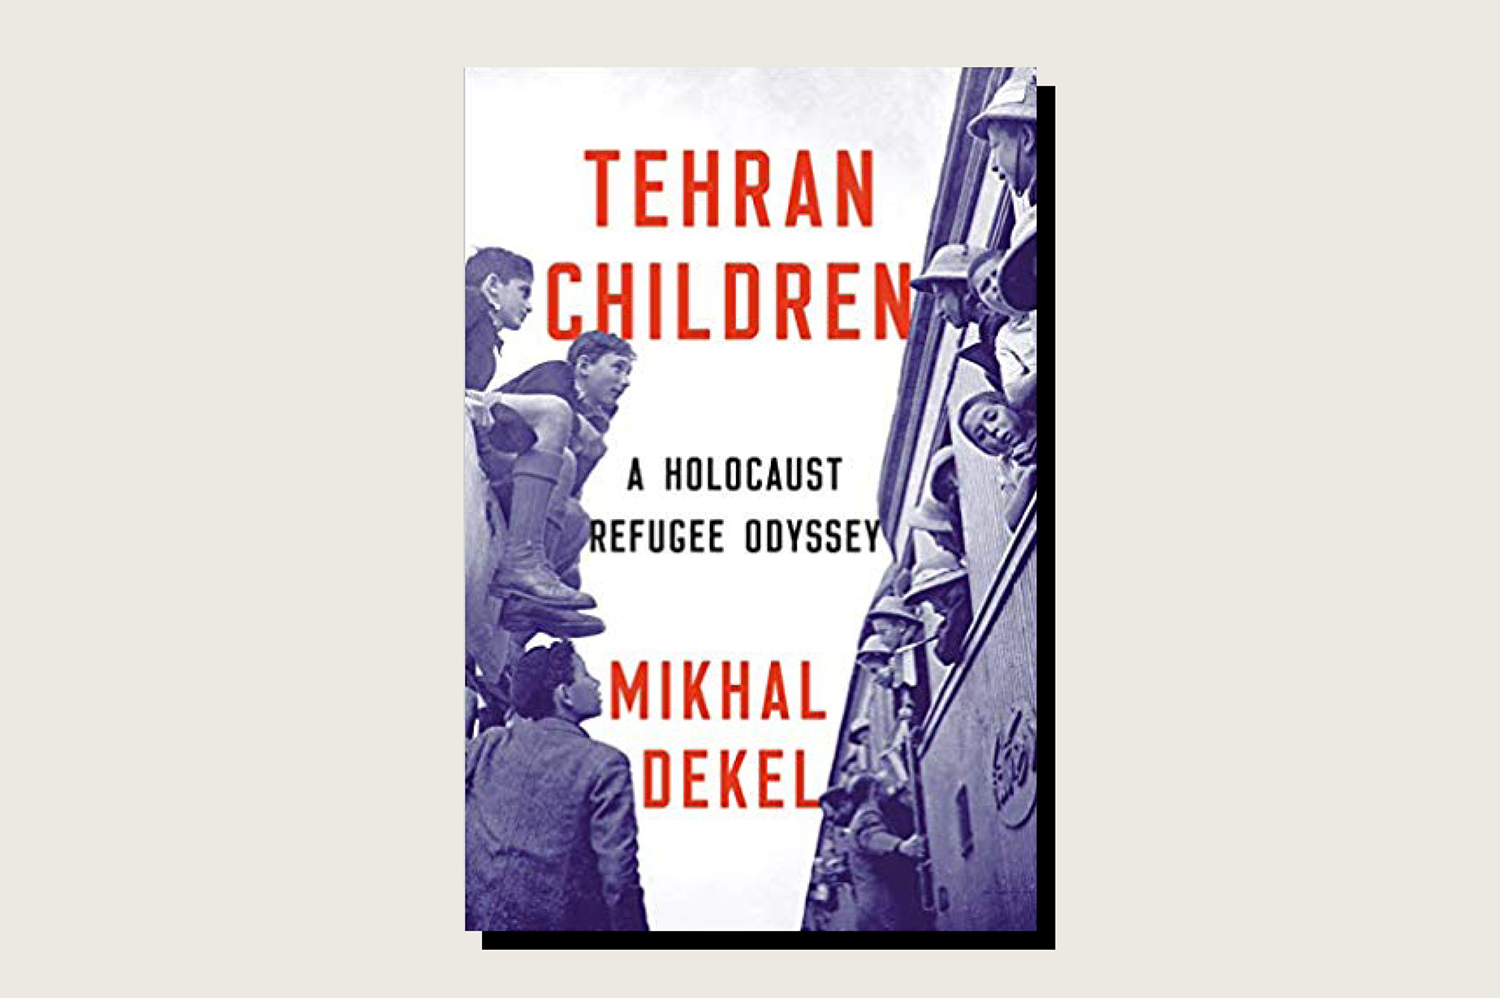 Tehran Children: A Holocaust Refugee Odyssey. Mikhal Dekel, W.W. Norton, .95, October 2019.